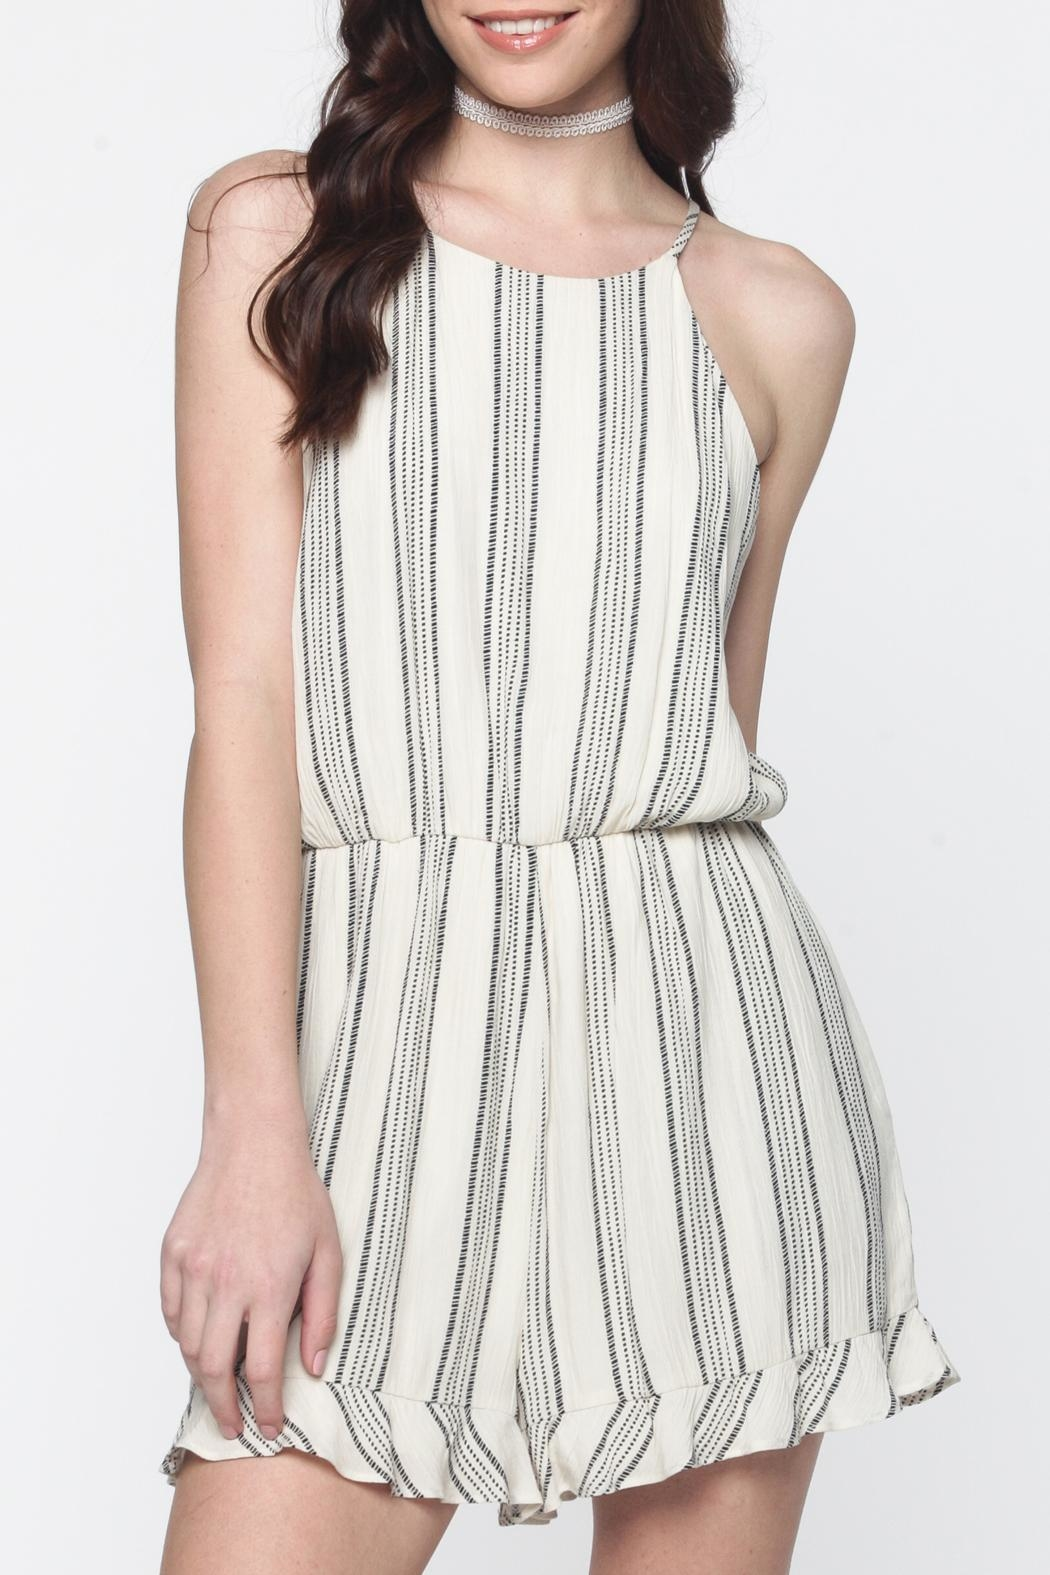 Everly Ivory Striped Romper - Main Image